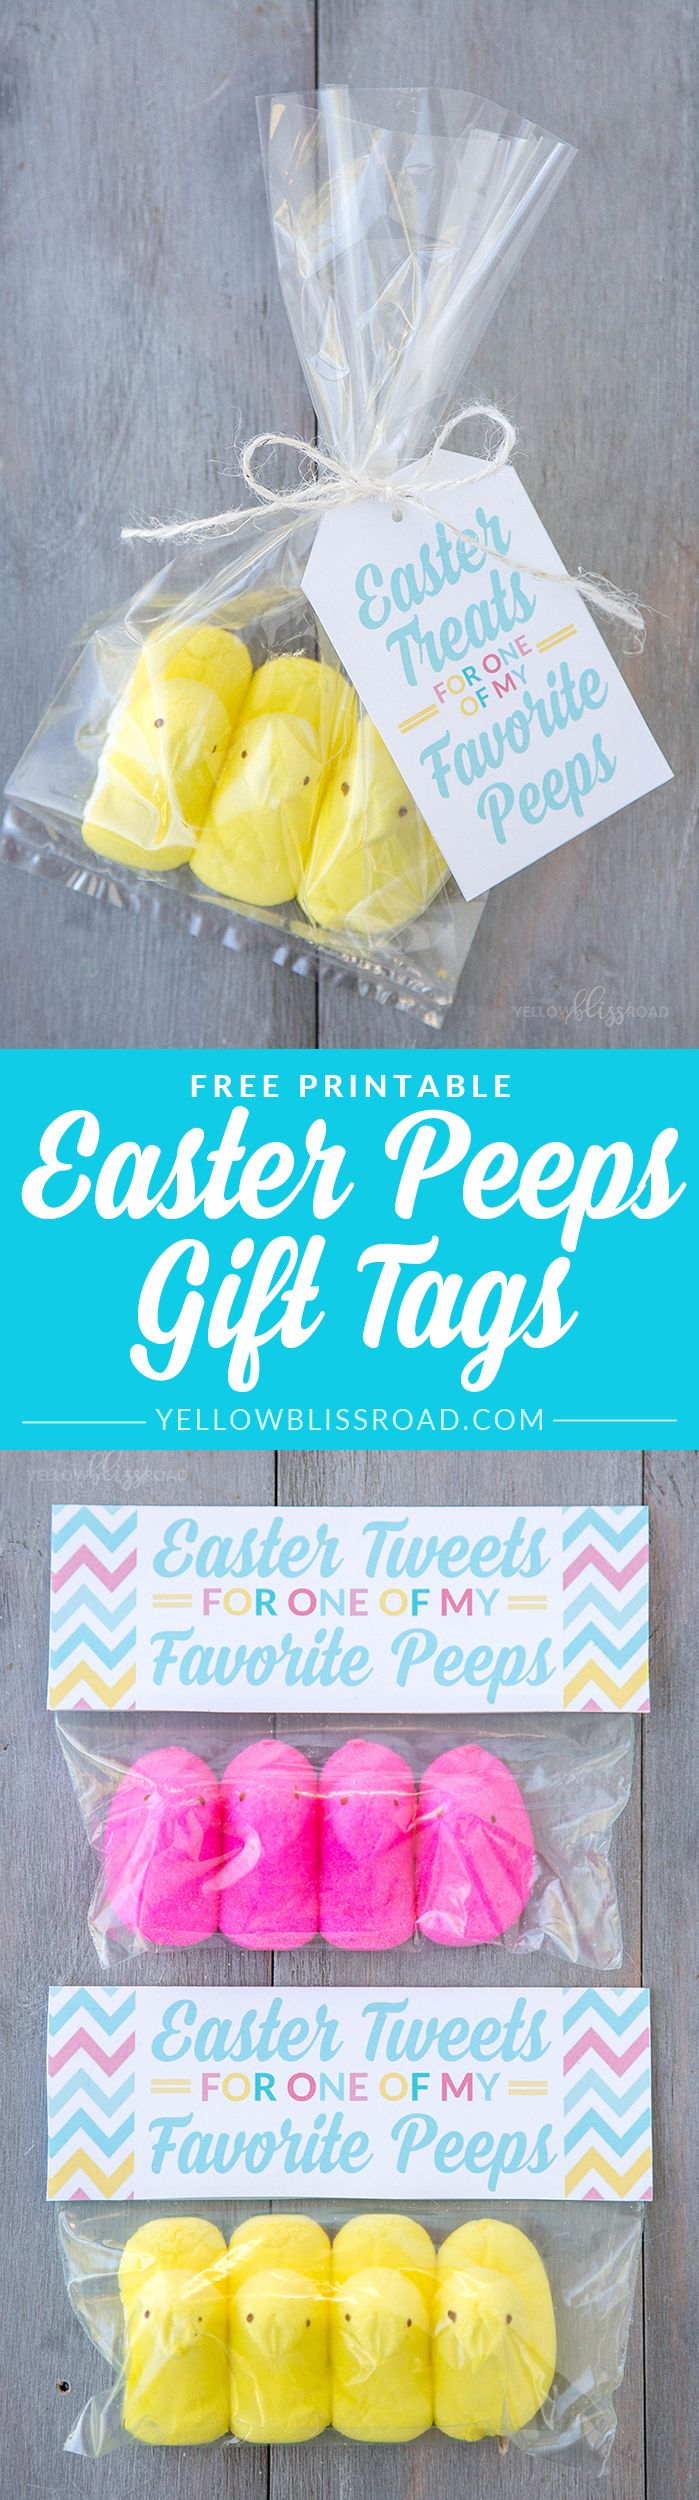 Peeps easter gift idea with free printables free printable gift peeps easter gift idea with free printables negle